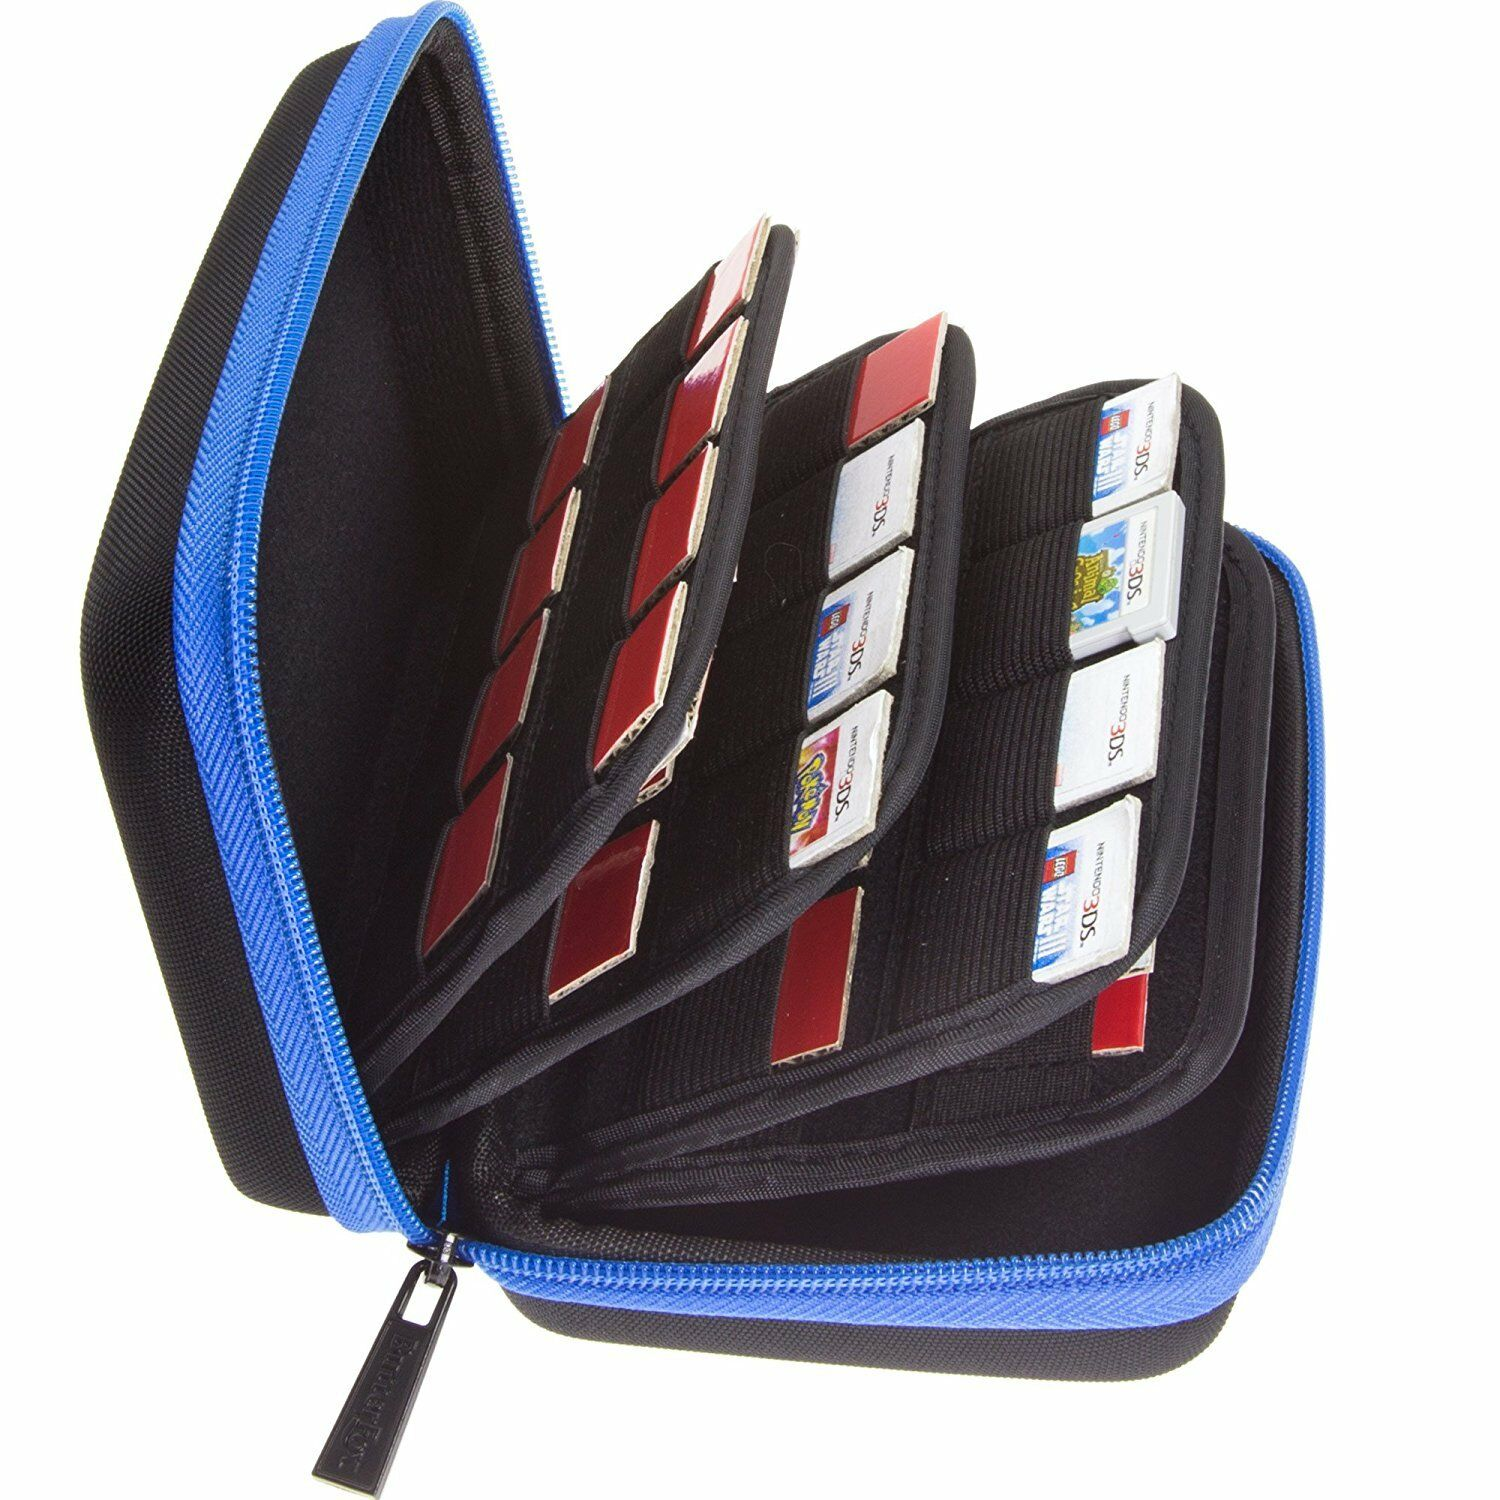 68 Holder Carry Case for Storage Nintendo Switch/PS Vita/3DS